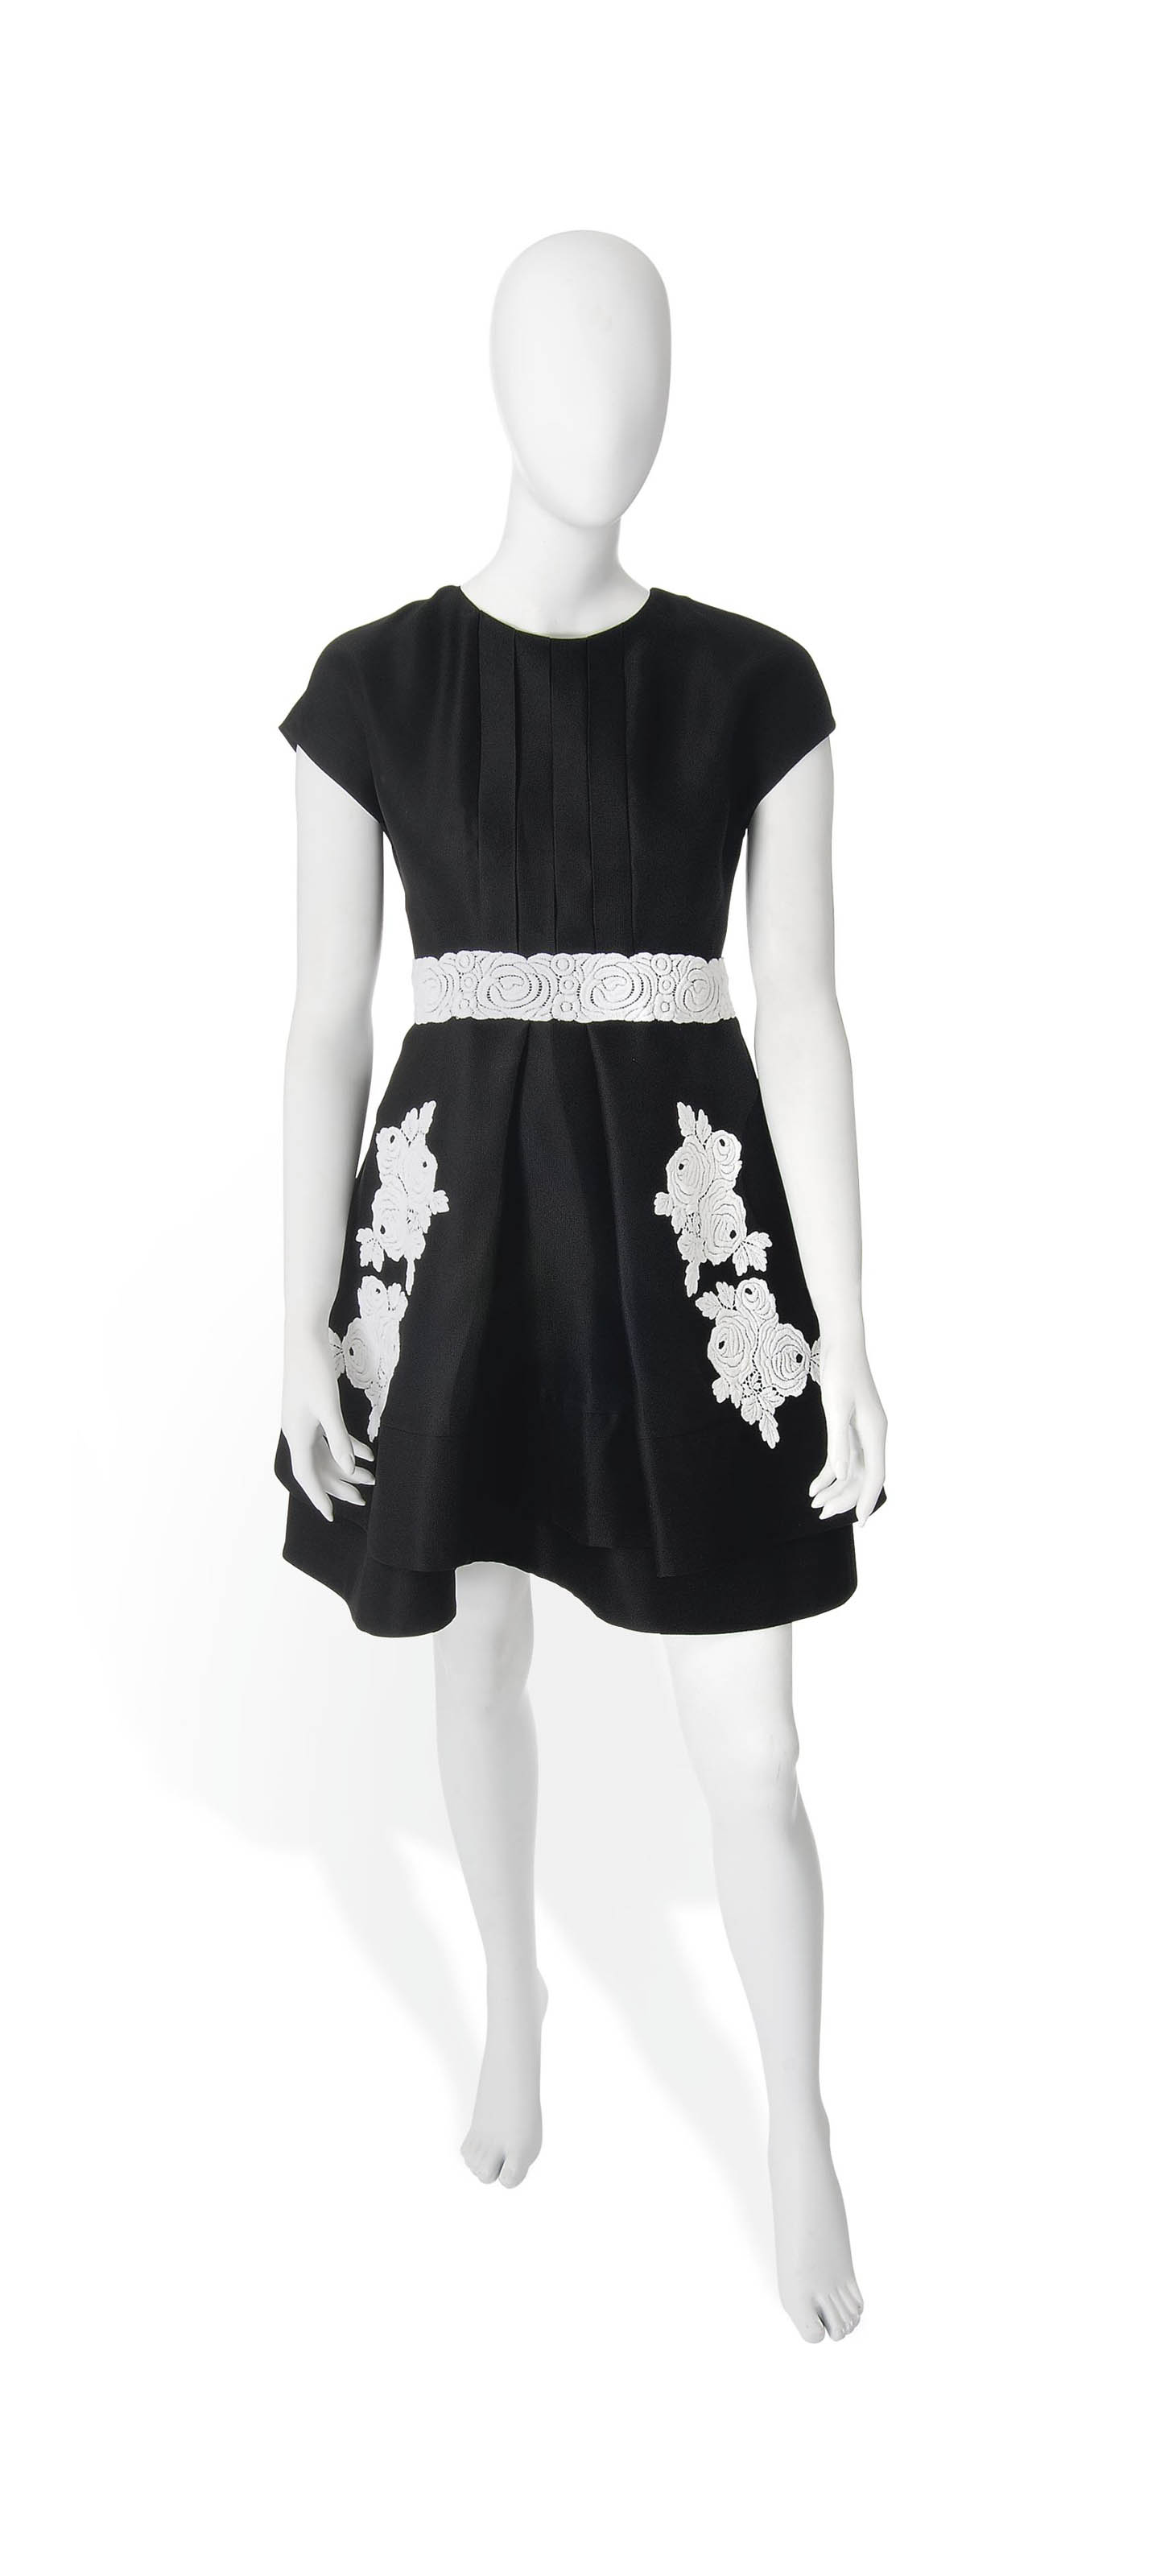 A Black Cocktail Dress With White Lace Guipure Flowers Requiem